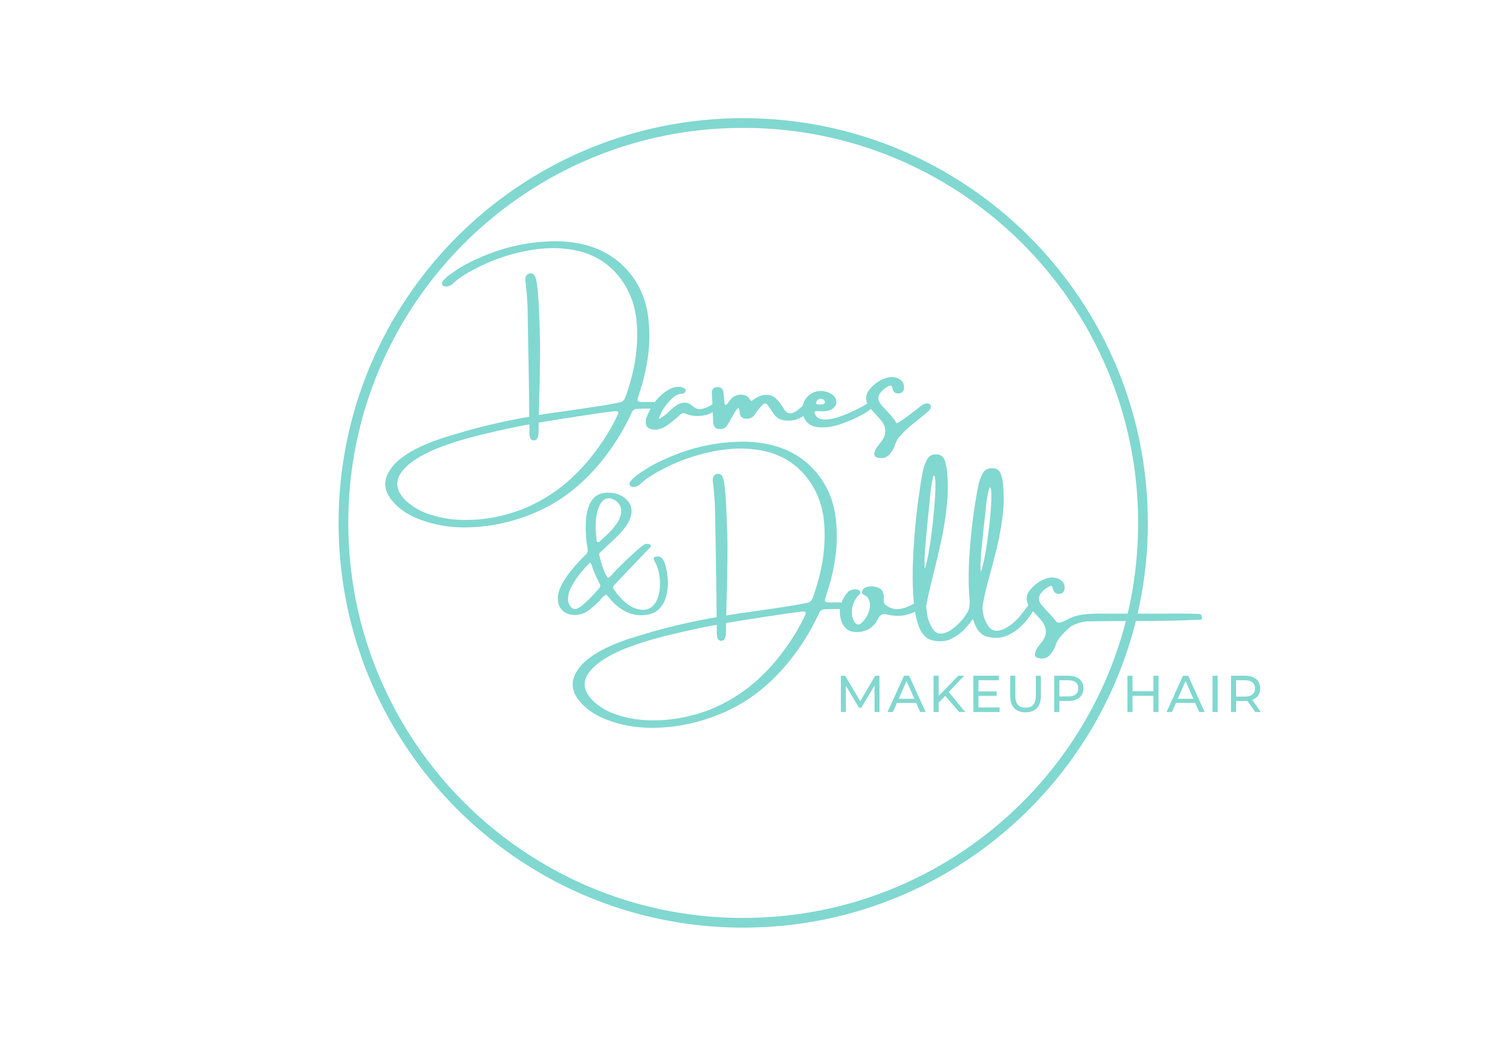 Dames and Dolls Makeup and Hair